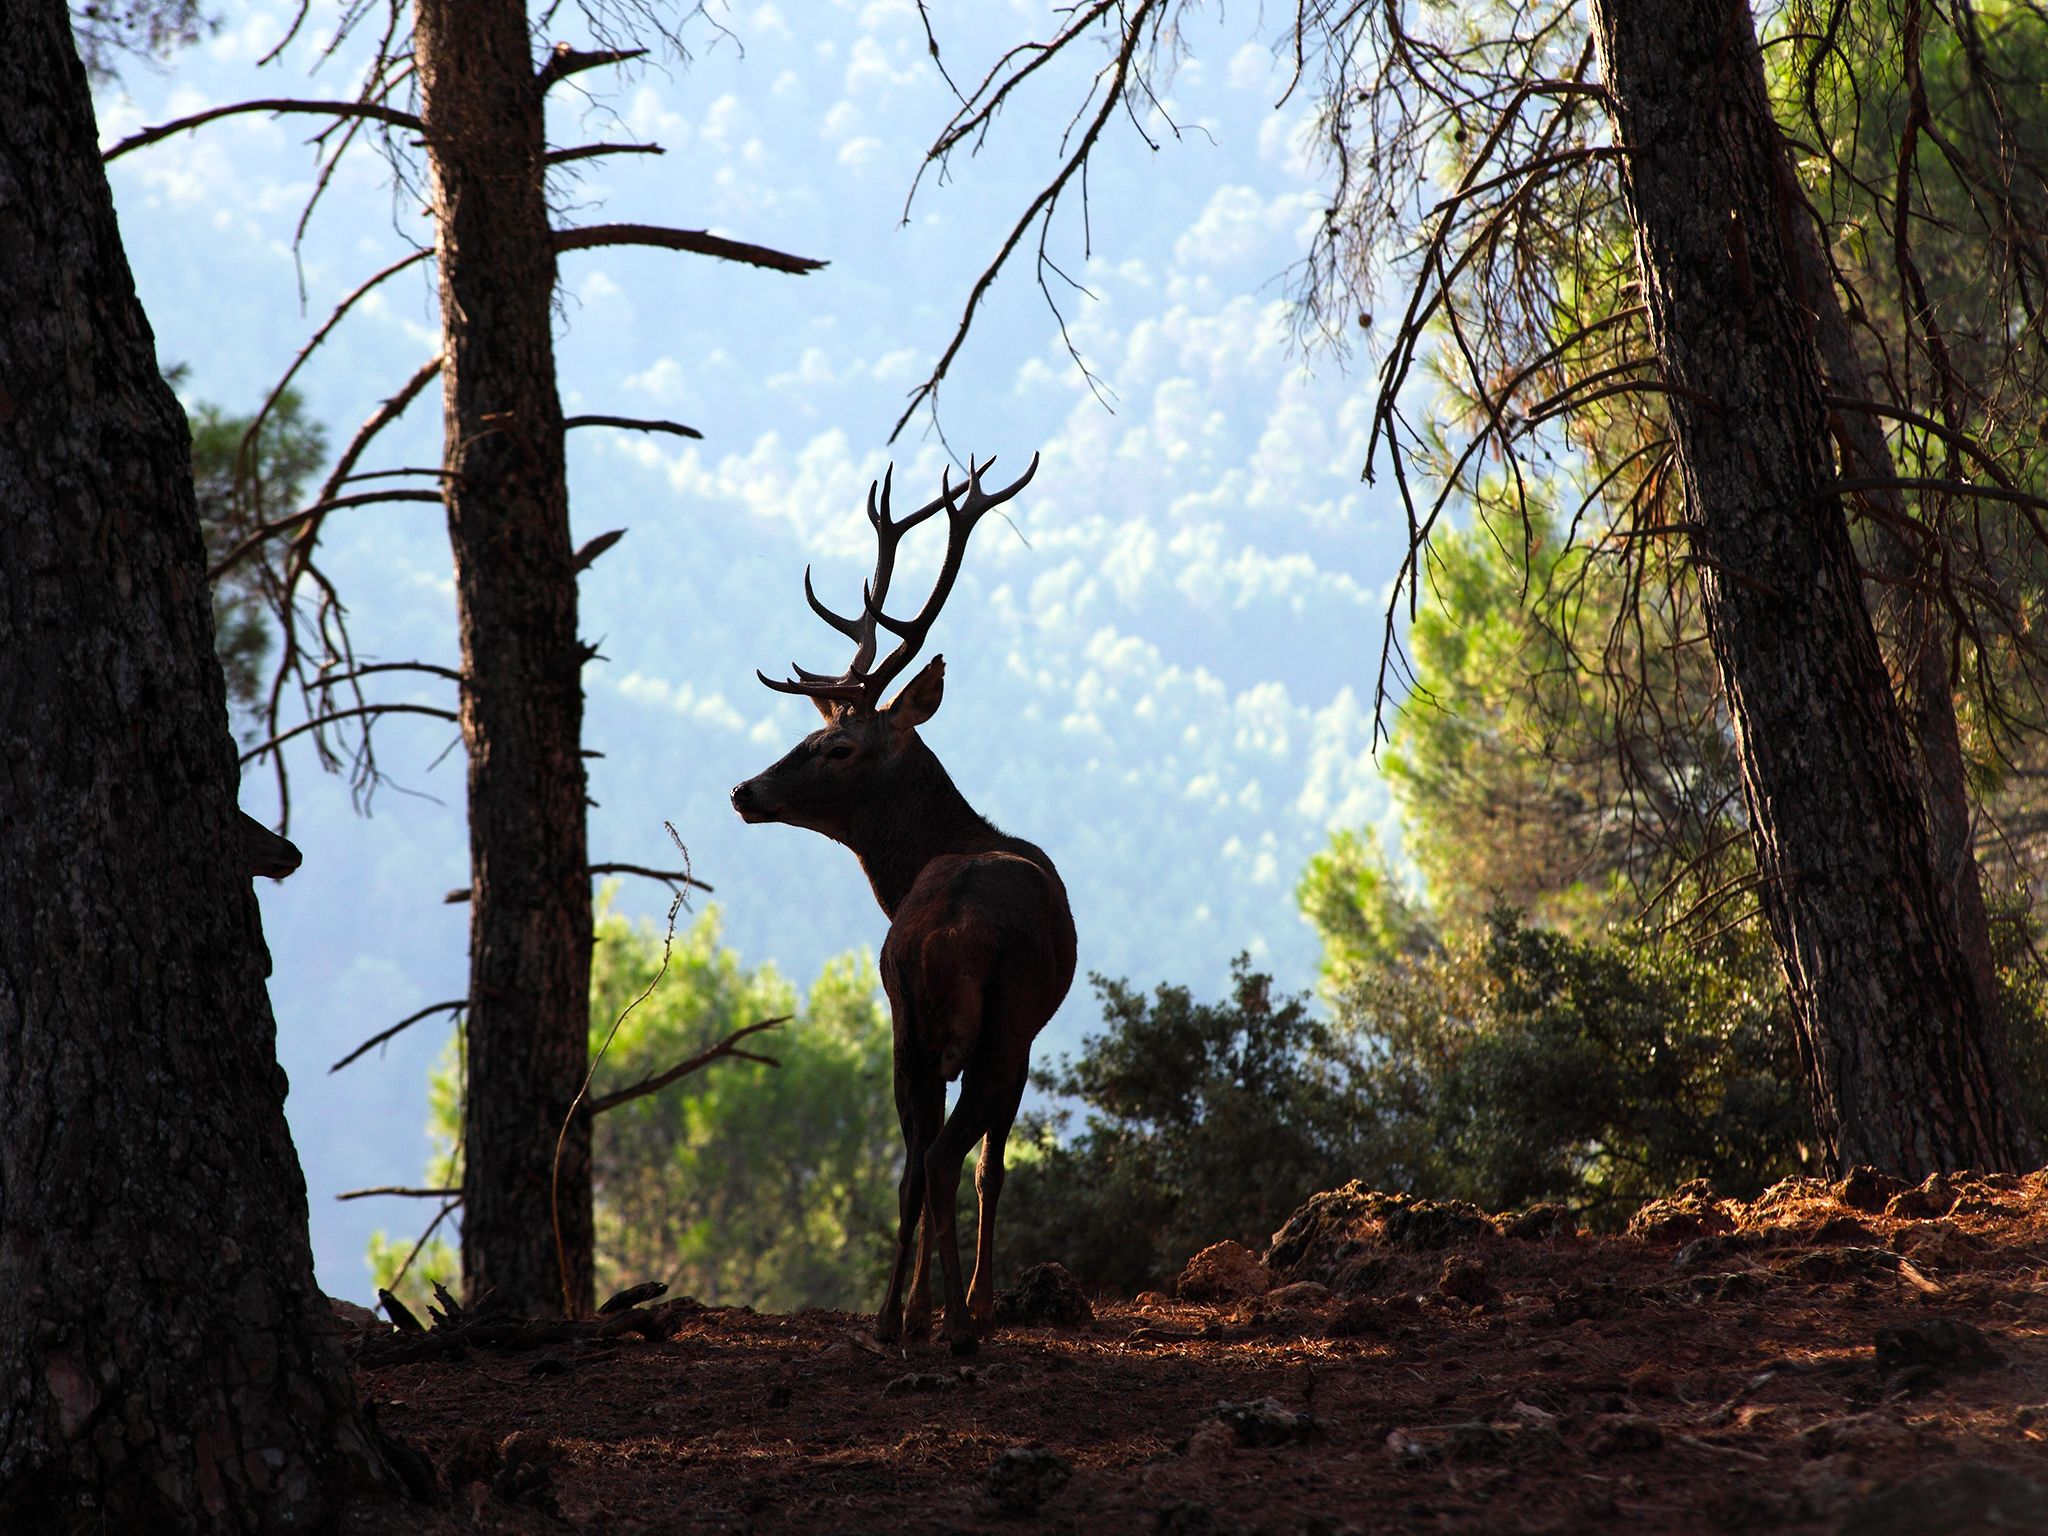 Spain: The large spaces of the Sierra Morena are densely populated by herds of Red deer. This... [Photo of the day - December 2014]